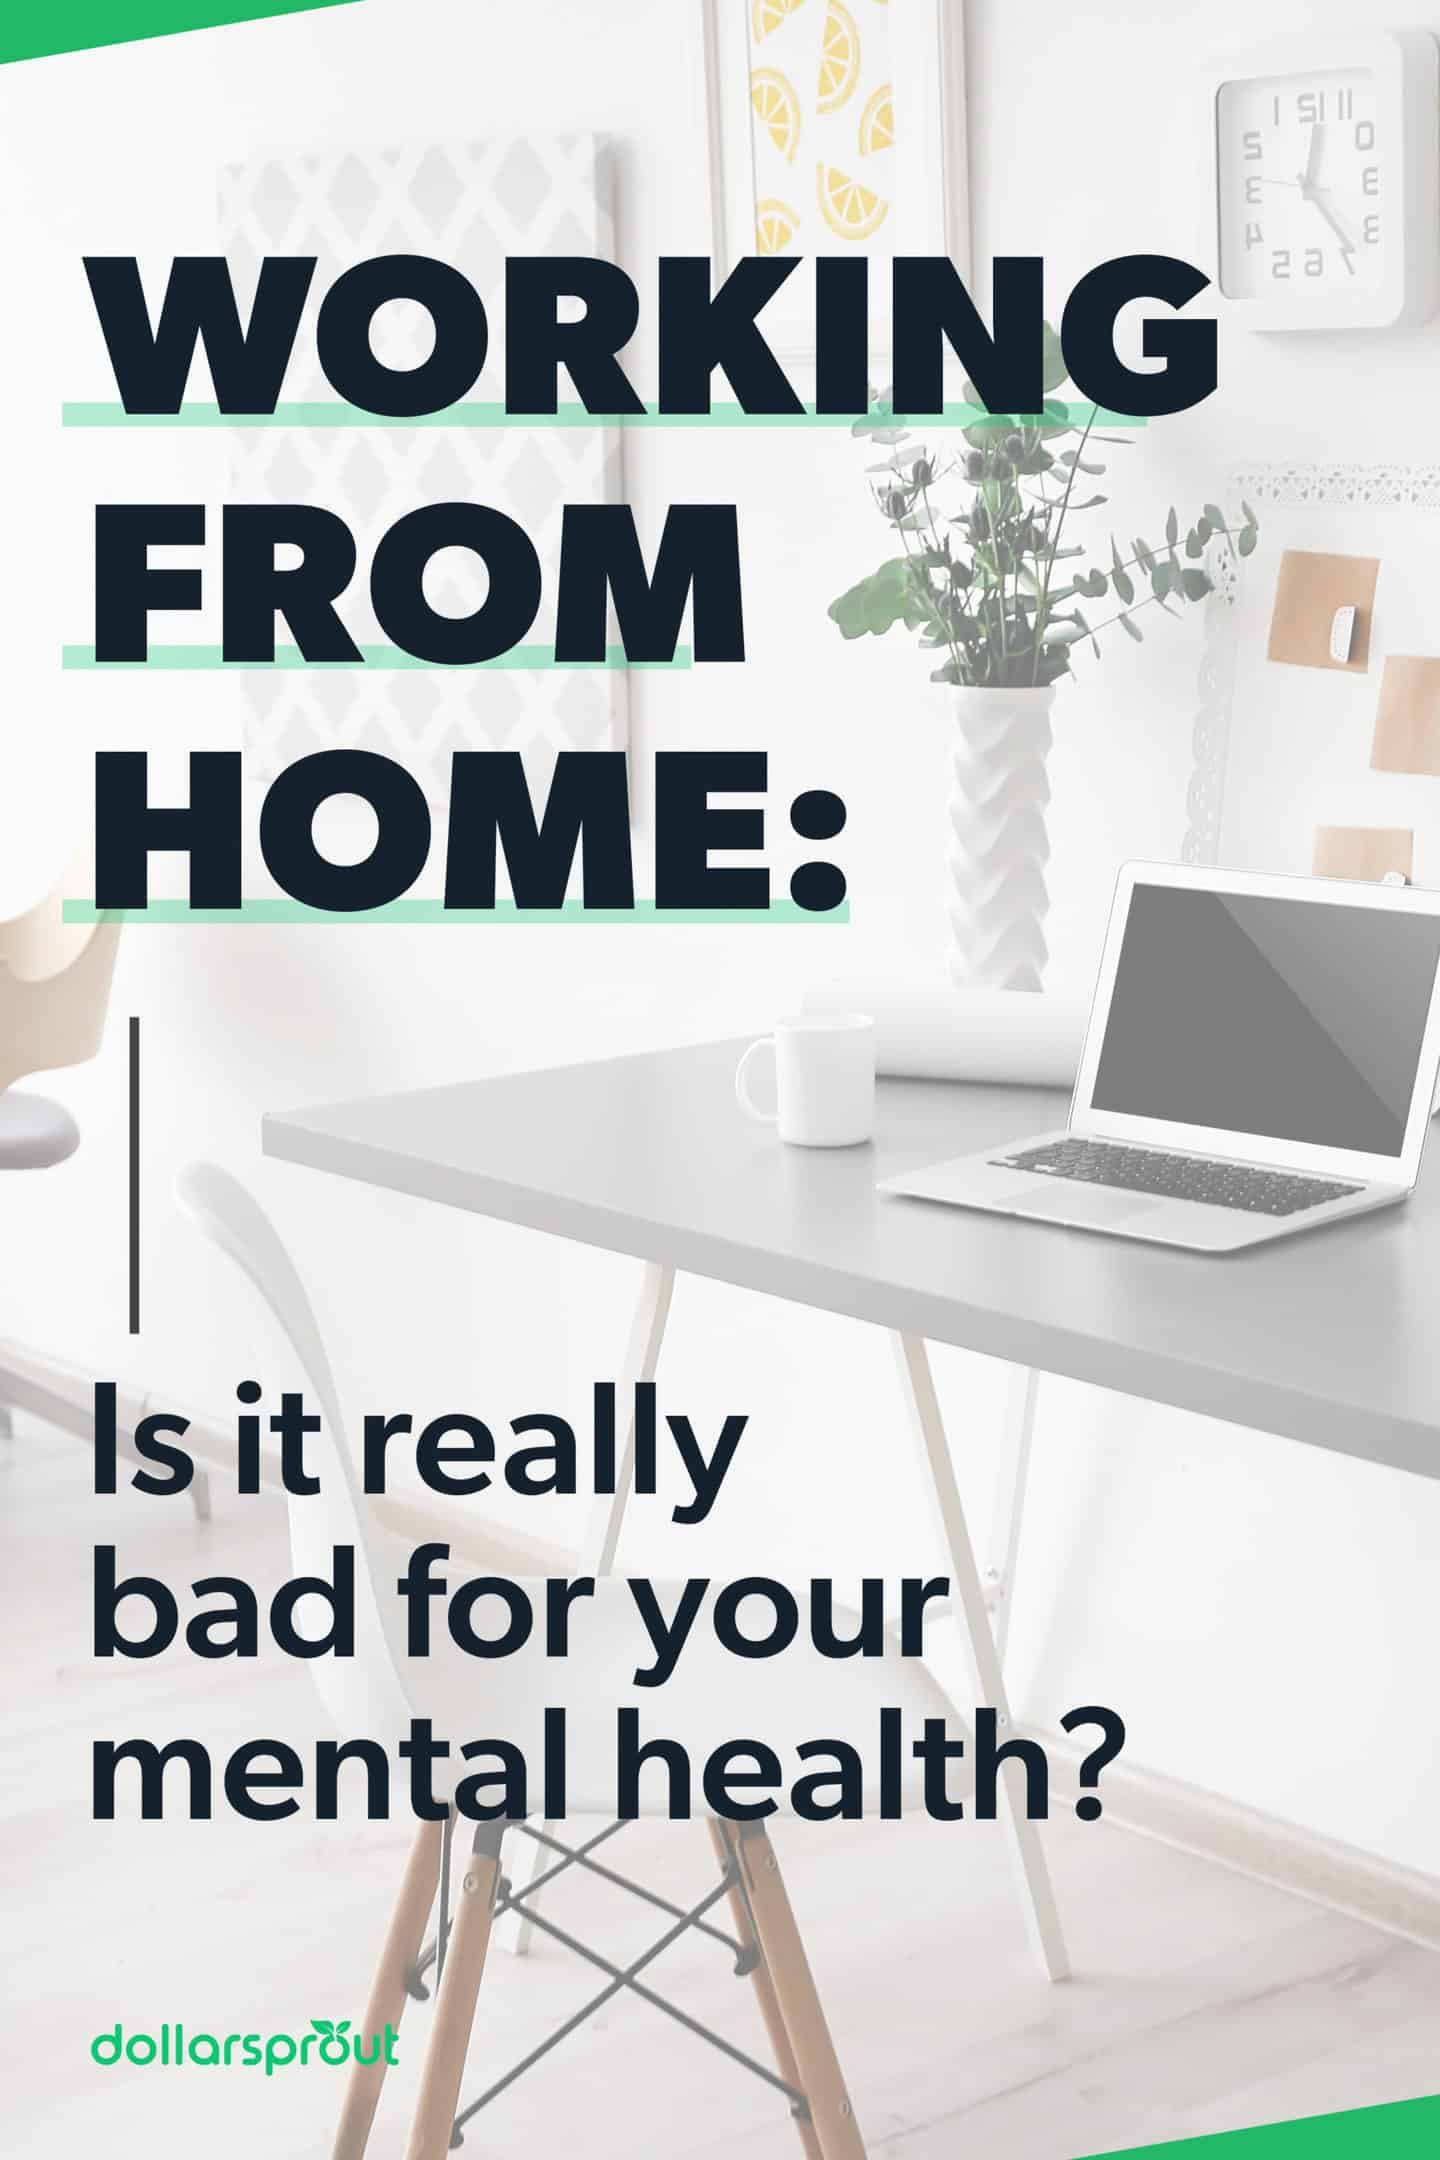 is working from home bad for your mental health?